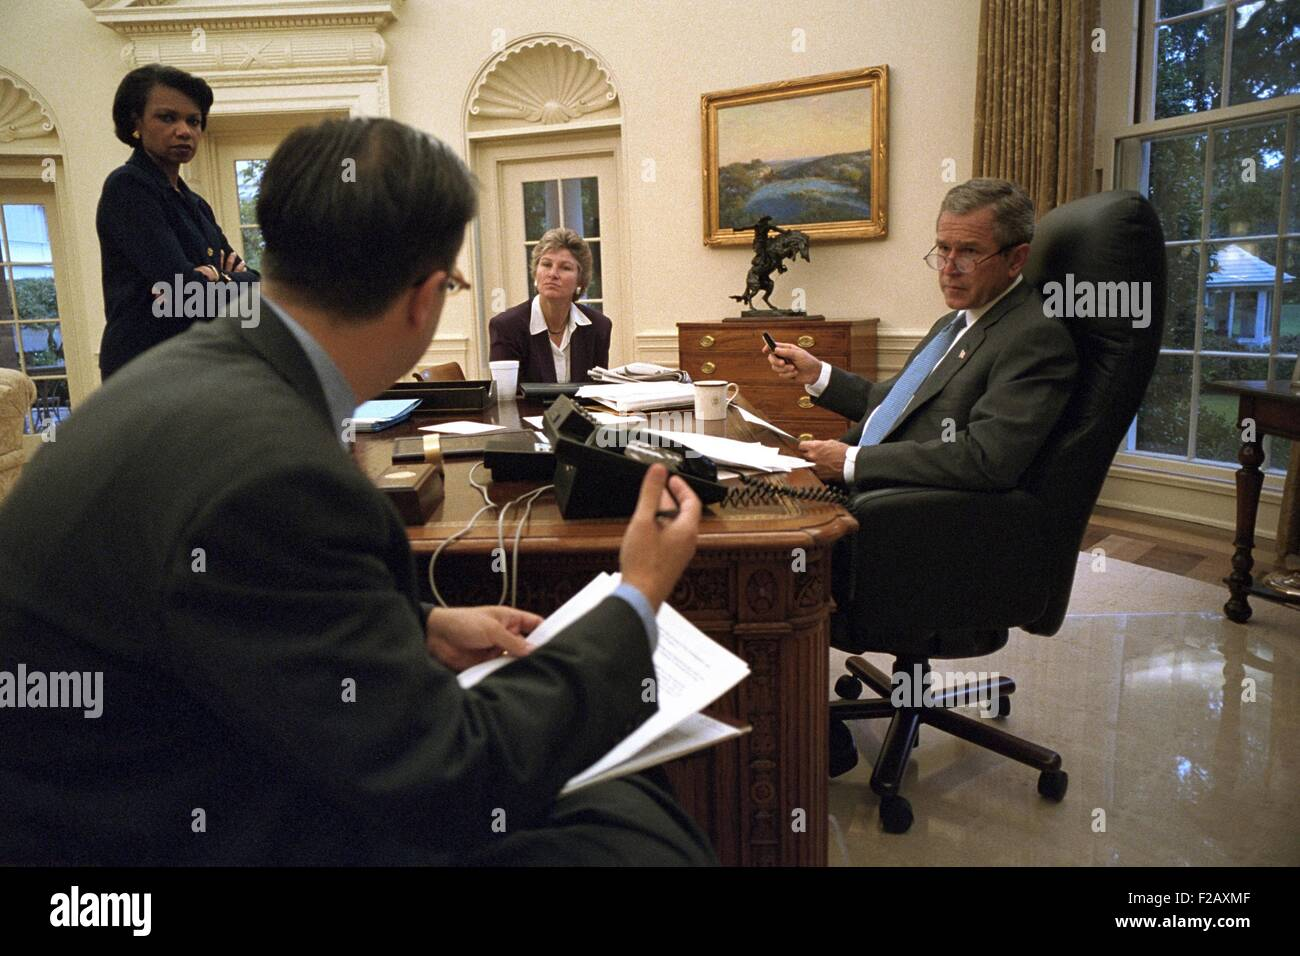 President George W. Bush preparing for his Sept. 20, 2001 speech to a Joint Session of Congress. With Bush 43 is Stock Photo